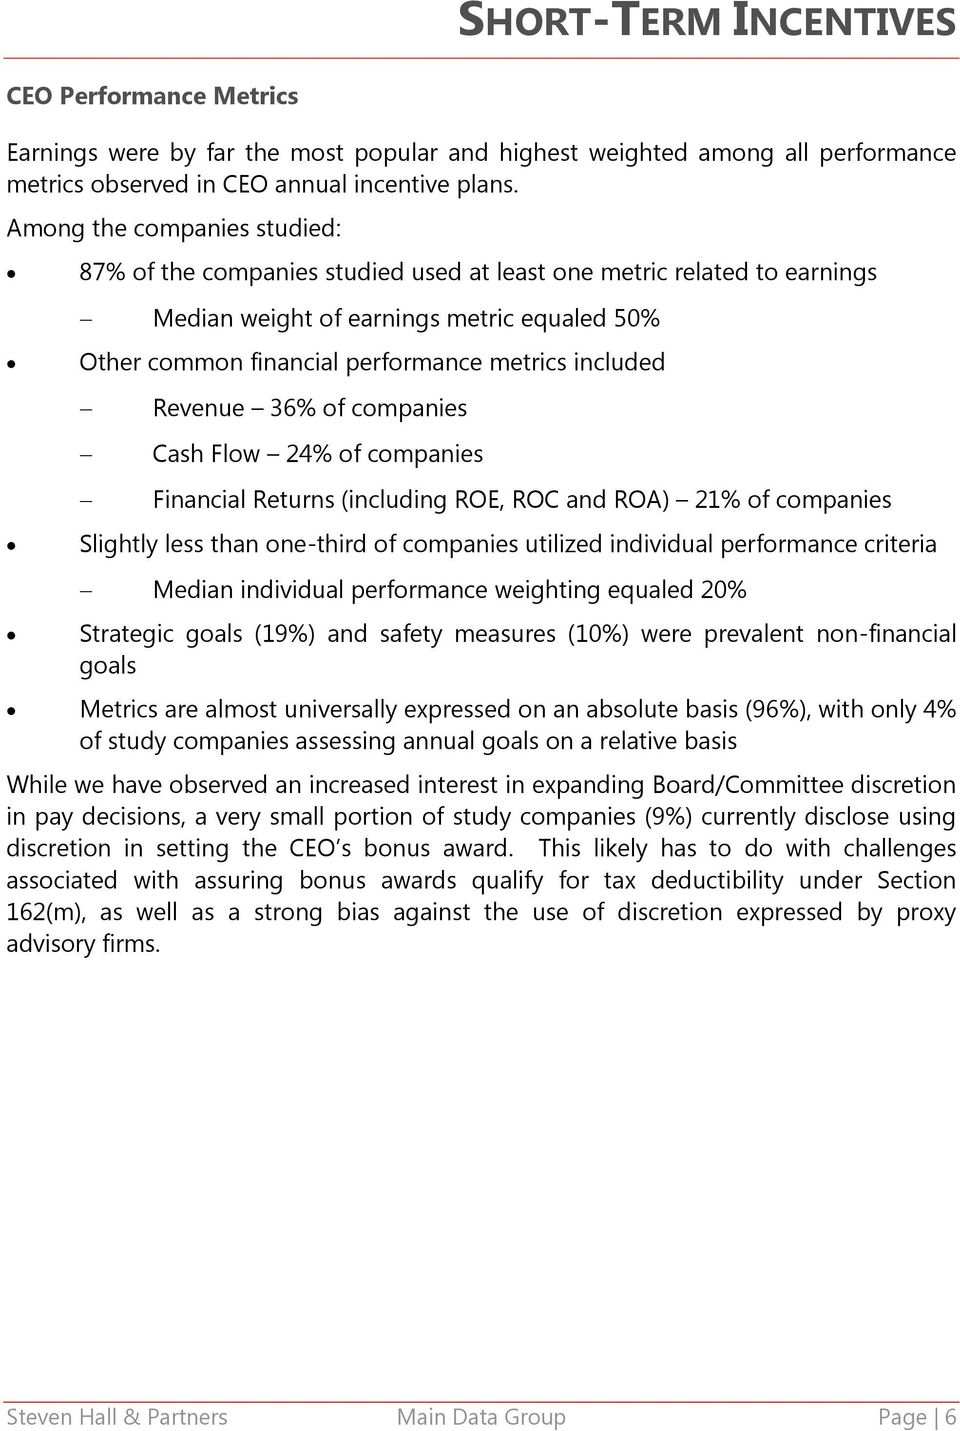 Revenue 36% of companies Cash Flow 24% of companies Financial Returns (including ROE, ROC and ROA) 21% of companies Slightly less than one-third of companies utilized individual performance criteria